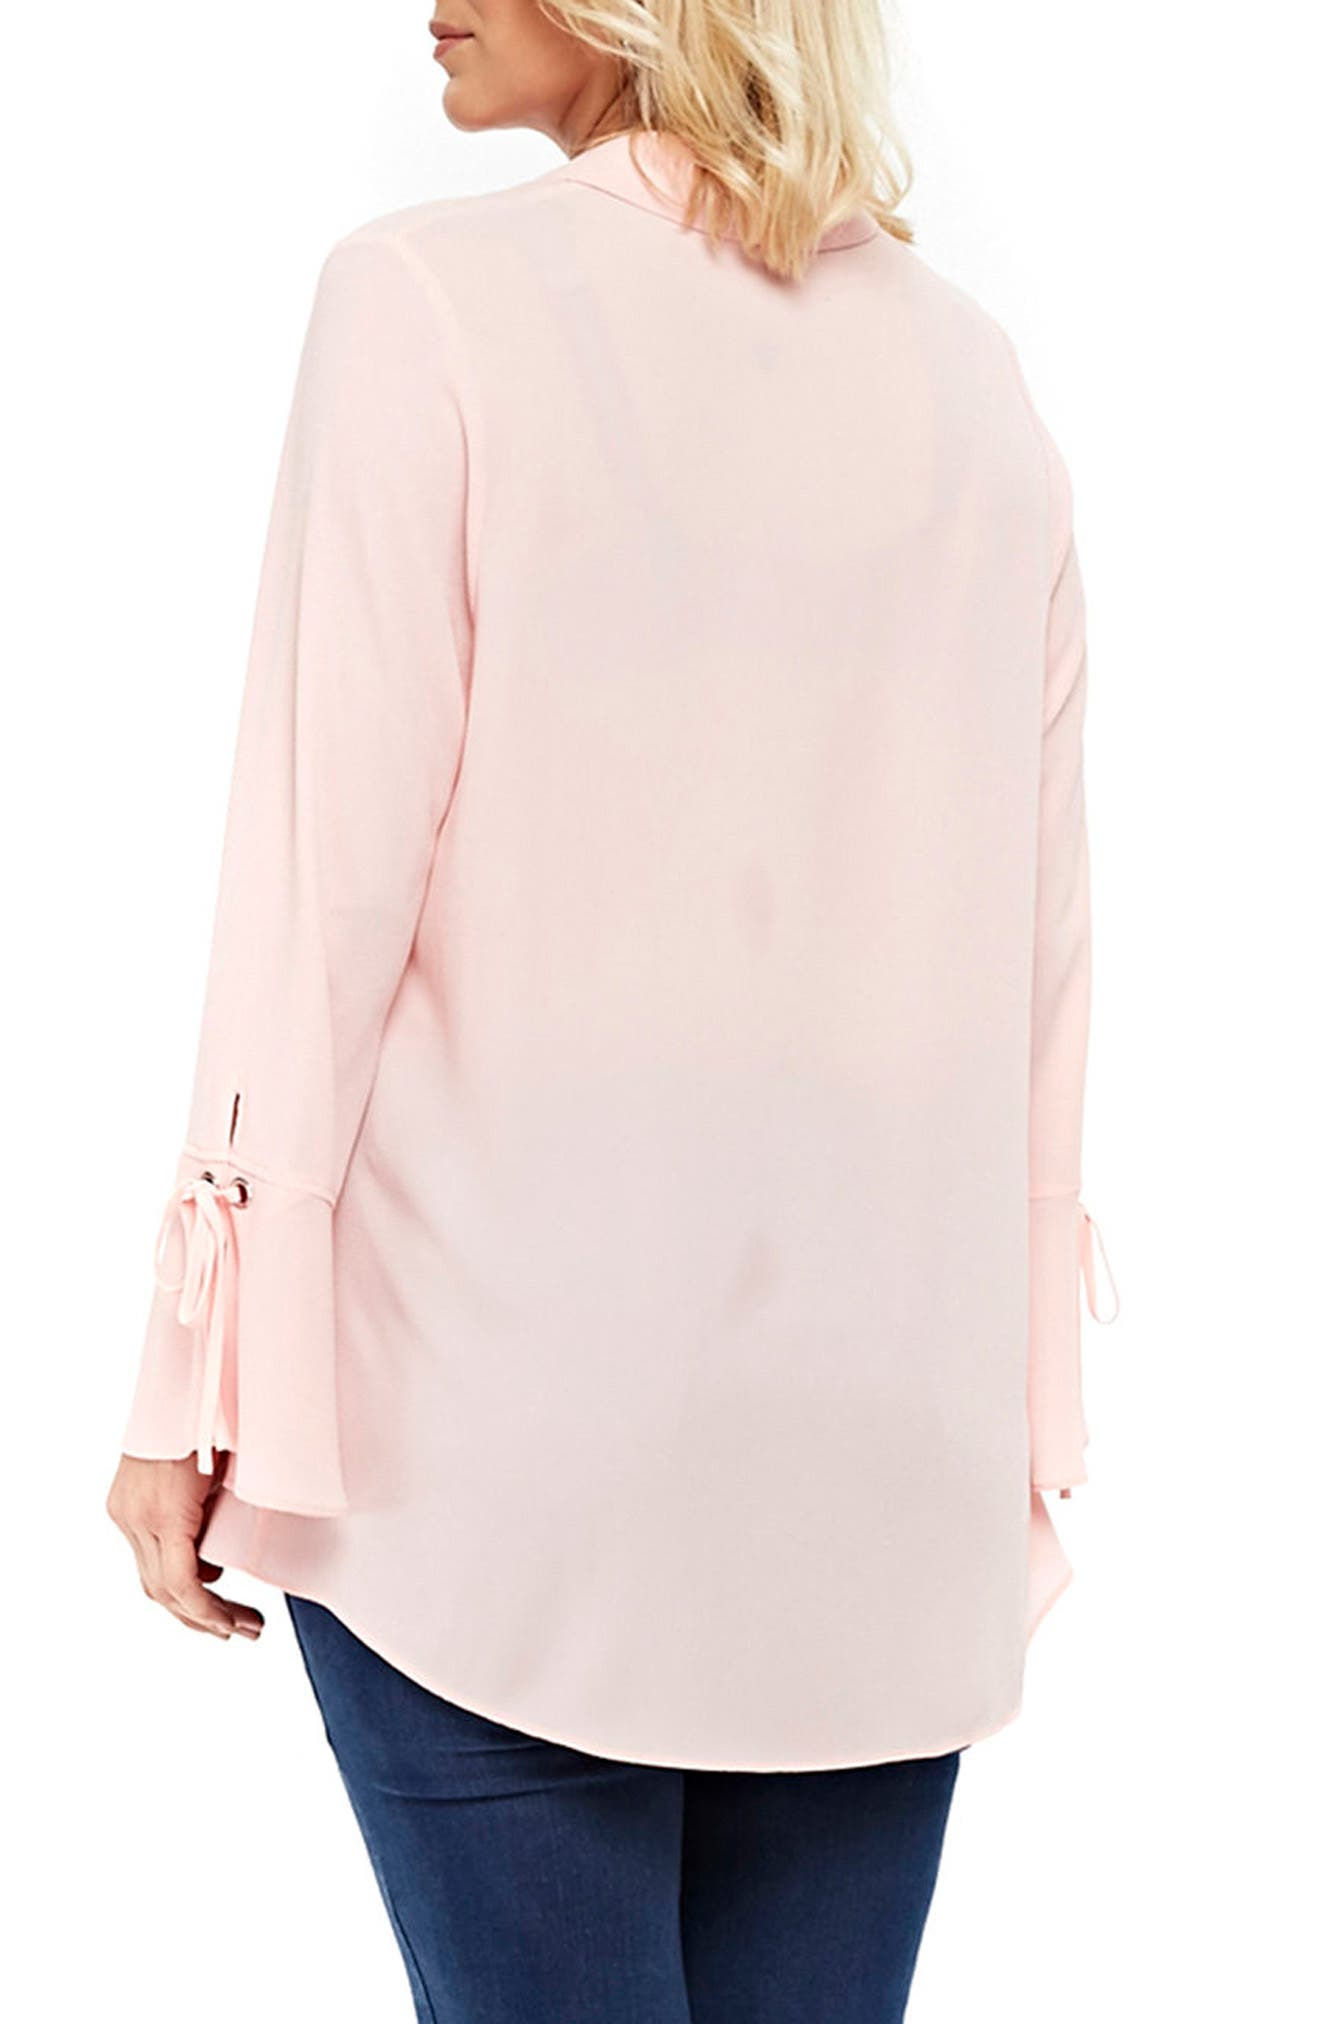 Lace-Up Cuff Shirt,                             Alternate thumbnail 2, color,                             Pale Pink